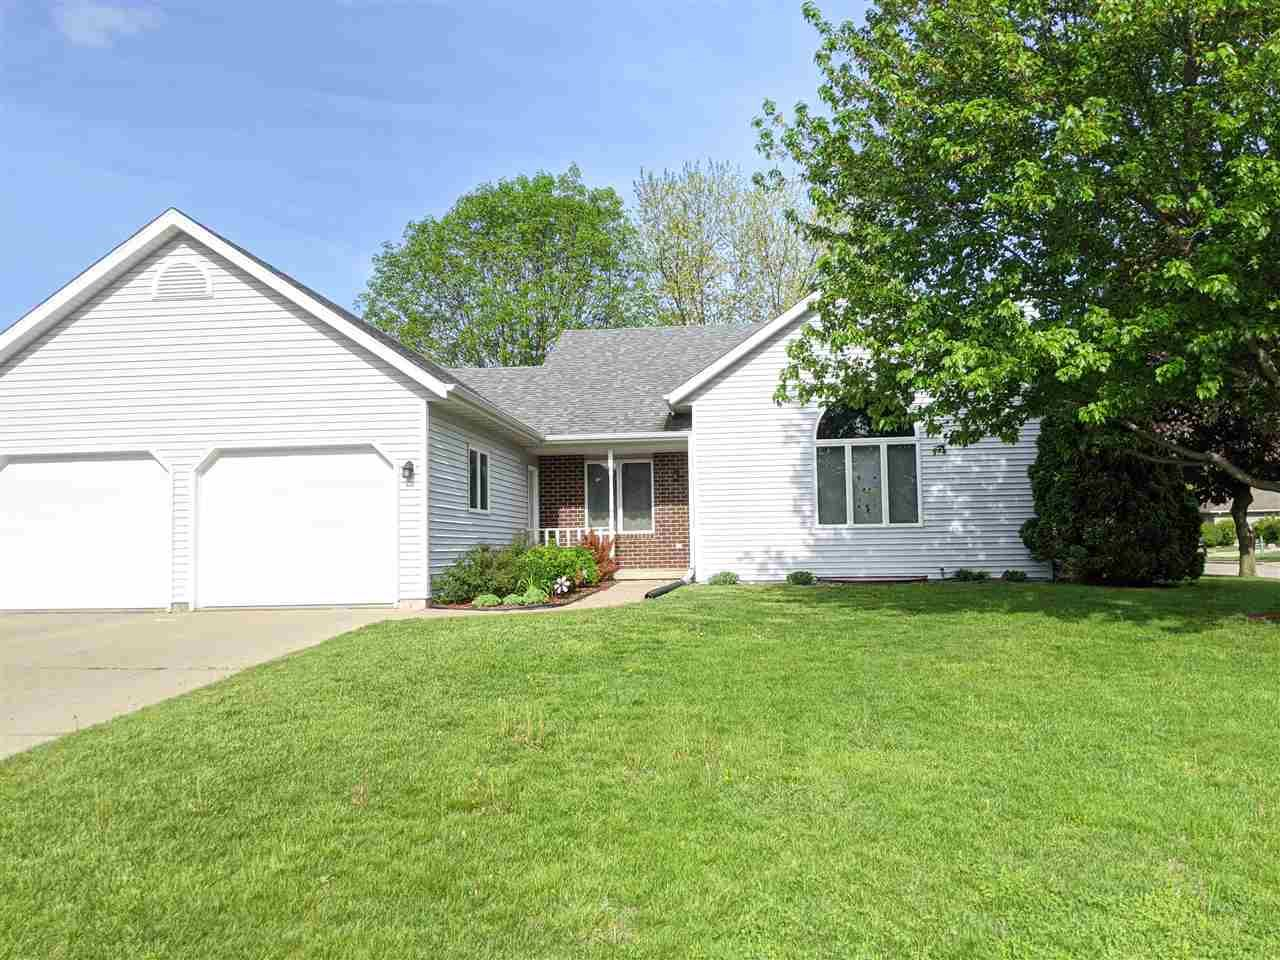 1502 Parkview Ct, Prairie du Sac, WI 53578 - #: 1884083